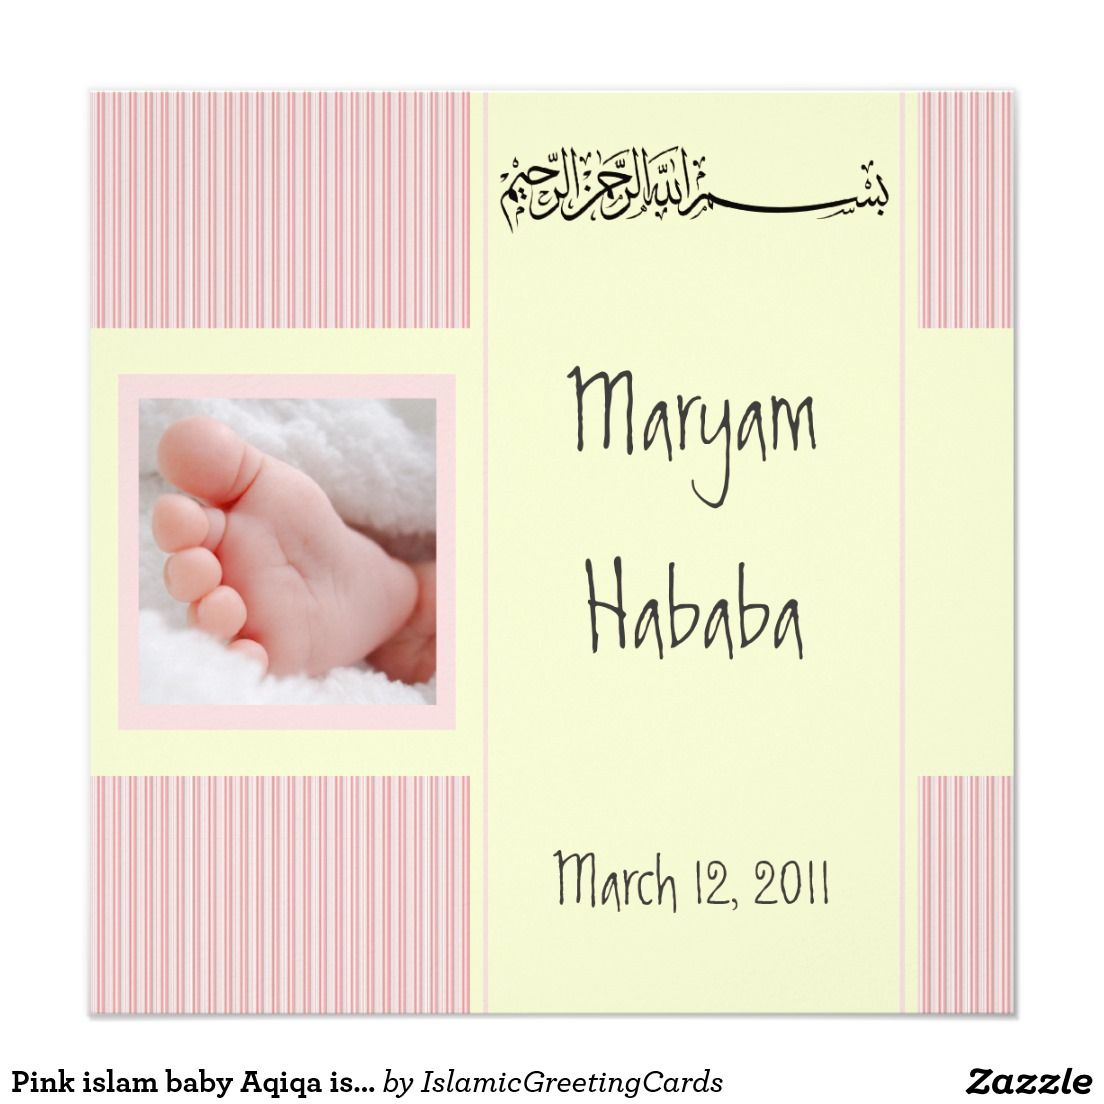 Pink islam baby aqiqa islam birth invitation card baby birth pink islam baby aqiqa islam birth invitation card m4hsunfo